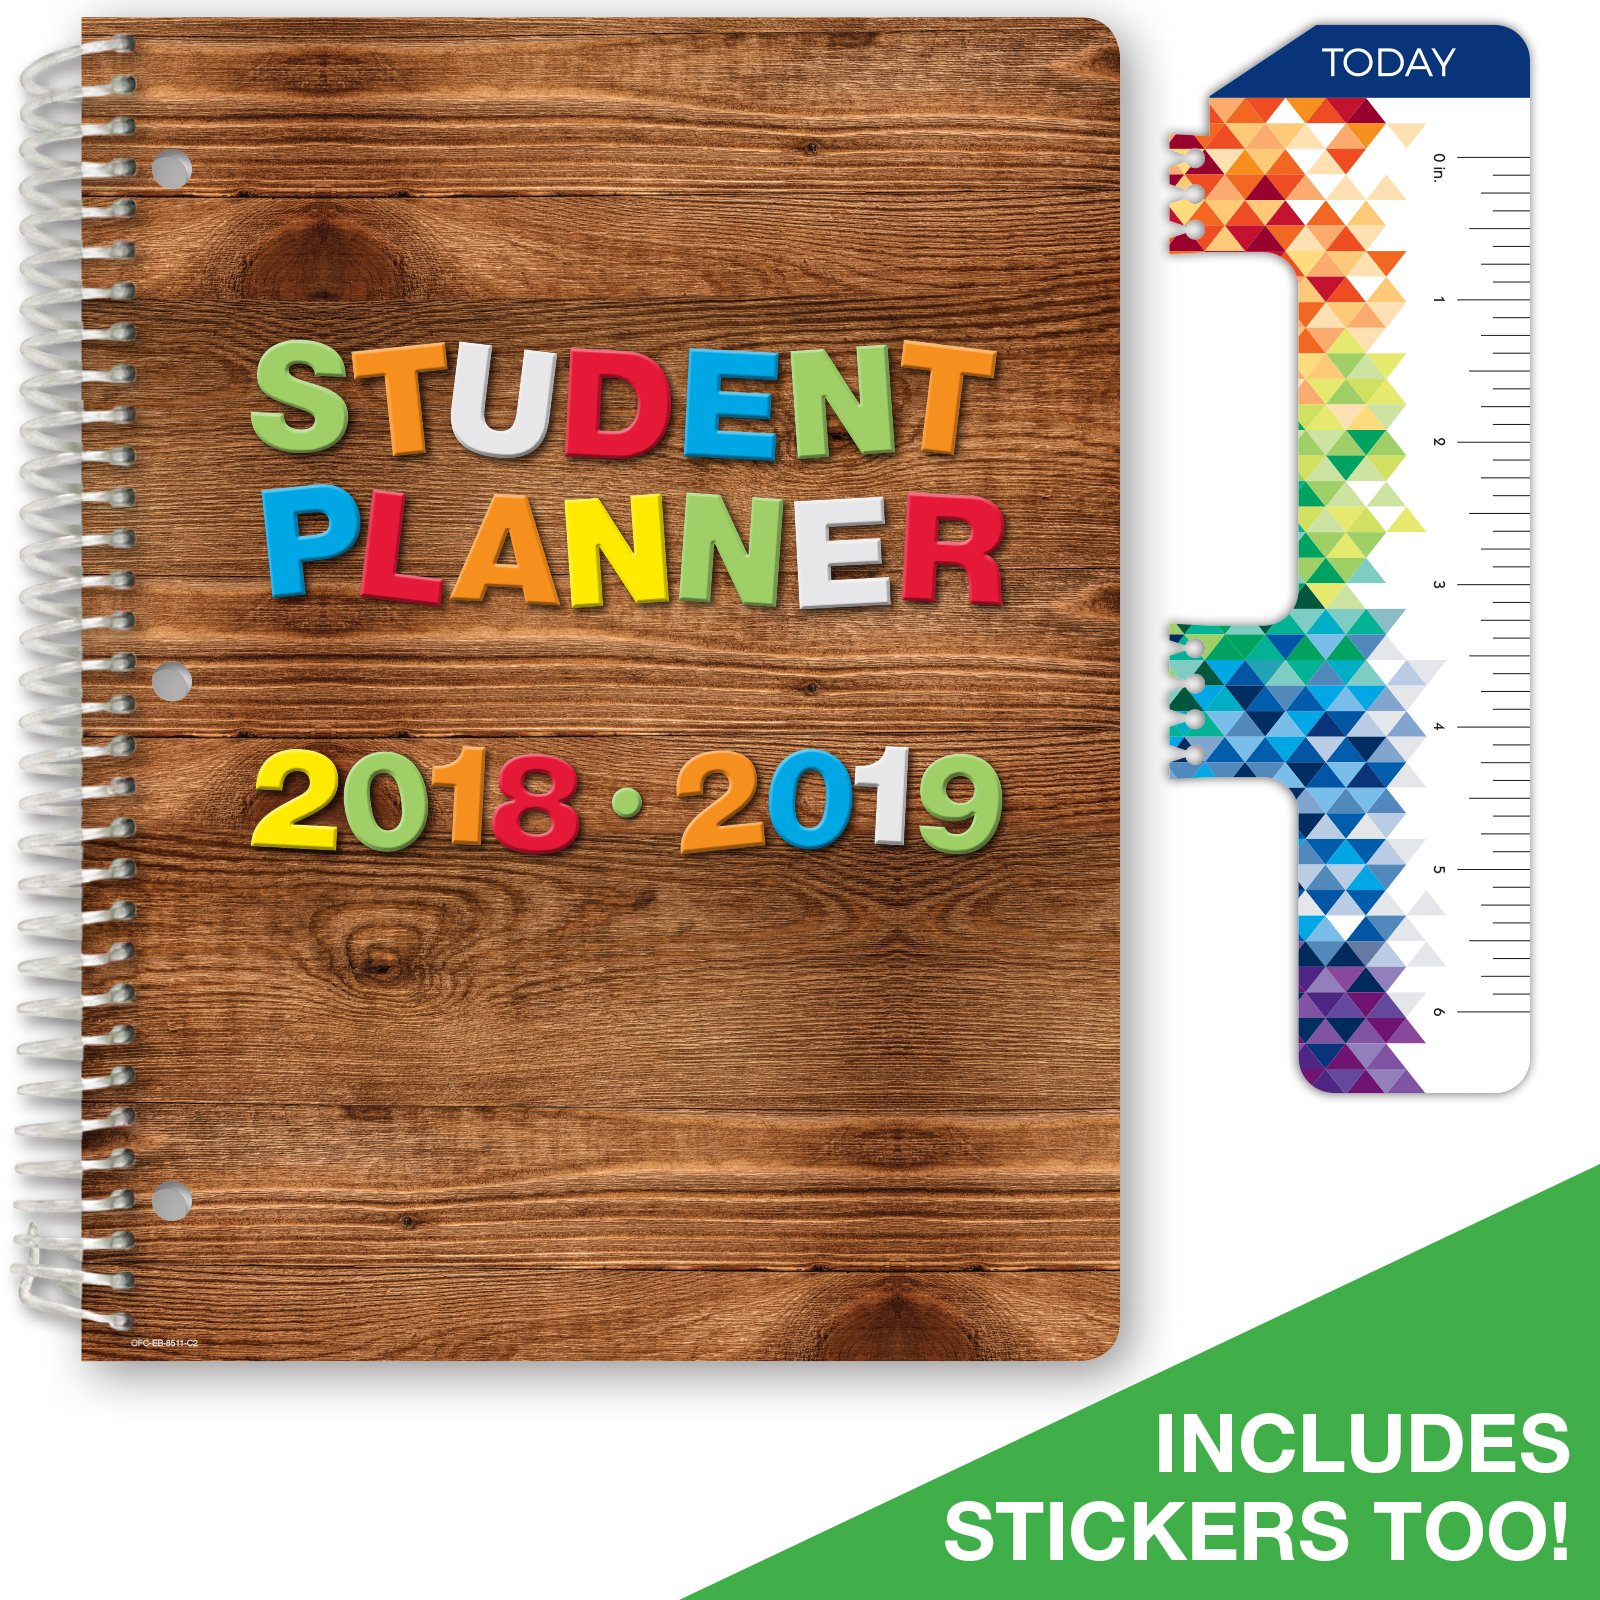 """2018-2019 Student Planner 8.5""""x11"""" Elementary School for Academic Year 2018-2019 (Block Style Agenda... by Global Datebooks"""